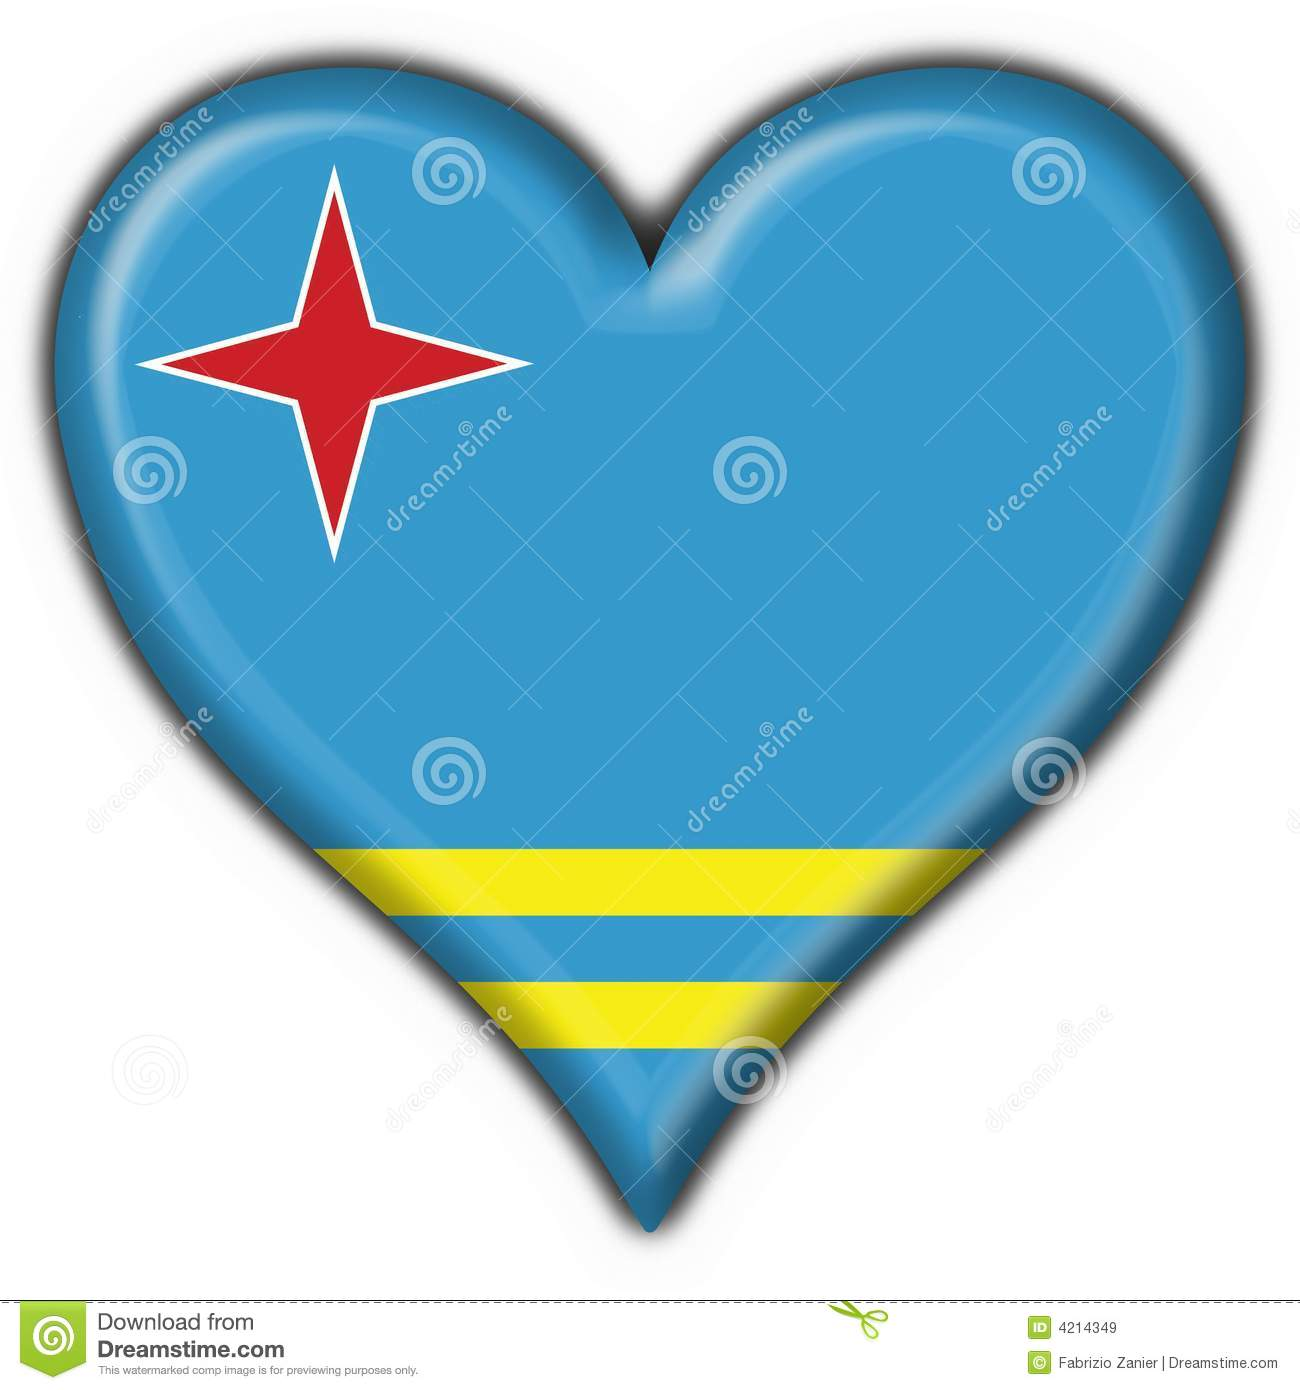 printable map of central america with Royalty Free Stock Images Aruba Button Flag Heart Shape Image4214349 on 197384396142079907 likewise Honduras moreover Cuba Map besides Belize together with Grenada Flag Colouring Page.